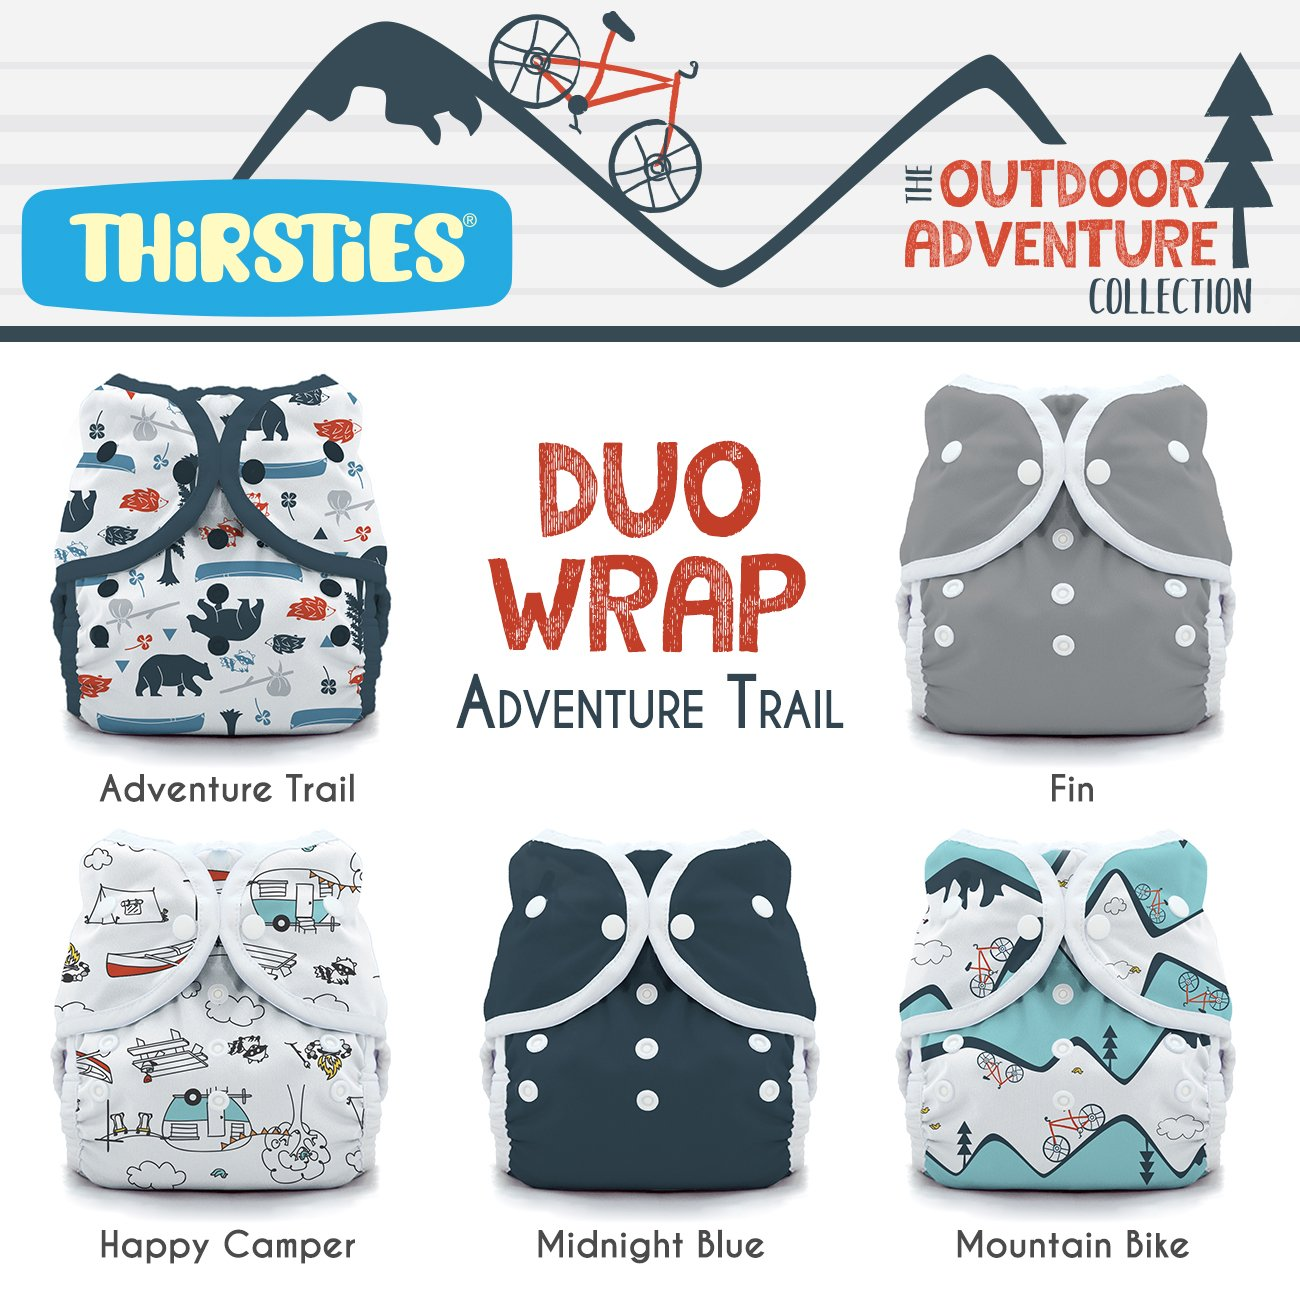 Thirsties TDWPSOACAT2 Package Snap Duo Wrap Outdoor Adventure Collection, Adventure Trail, Size Two (18-40-pound)